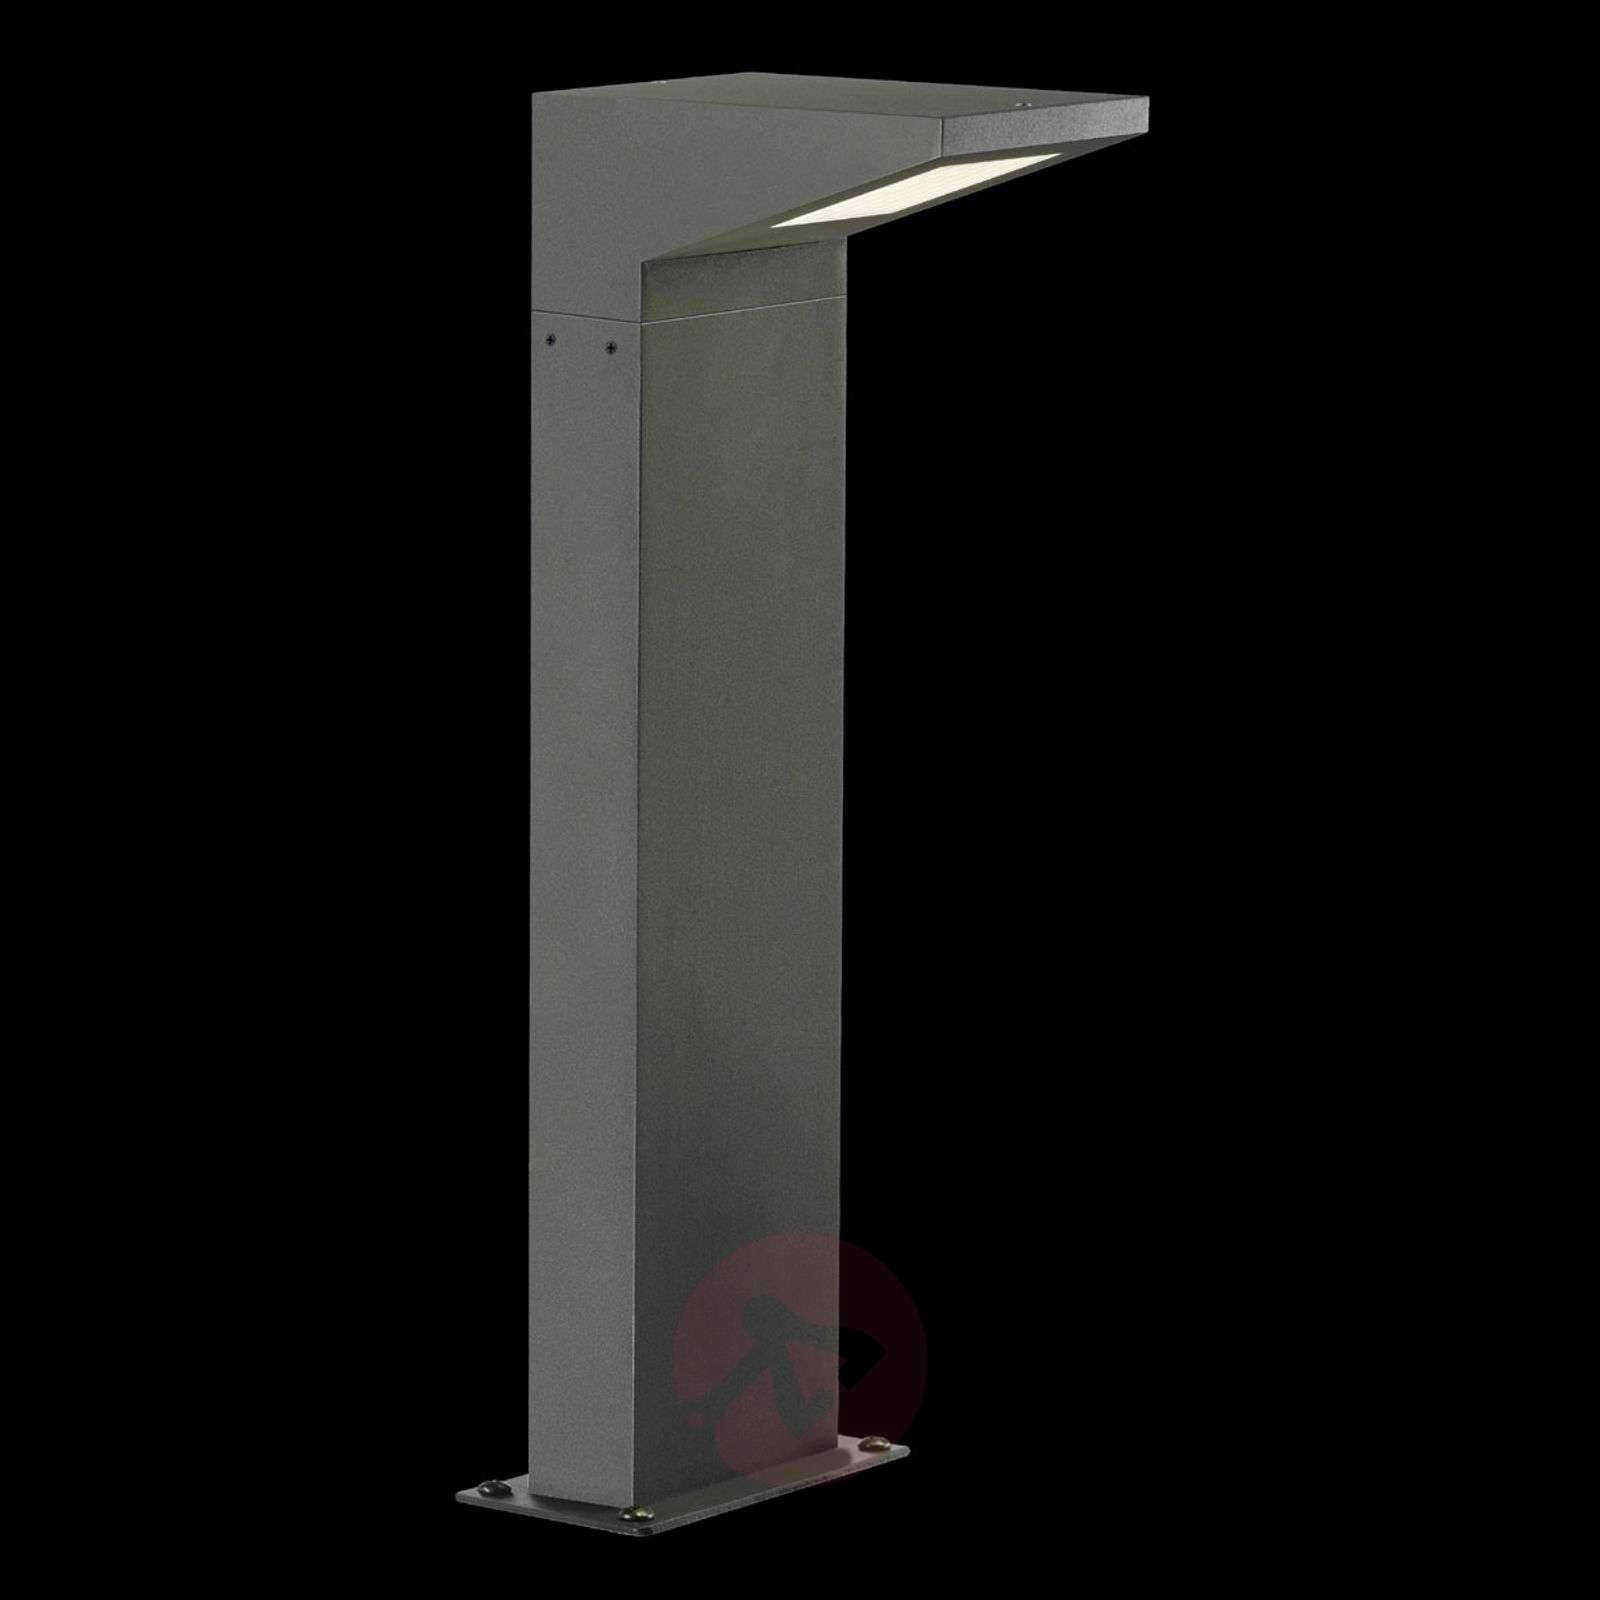 luminaire pour socle moderne led iperi anthracite. Black Bedroom Furniture Sets. Home Design Ideas